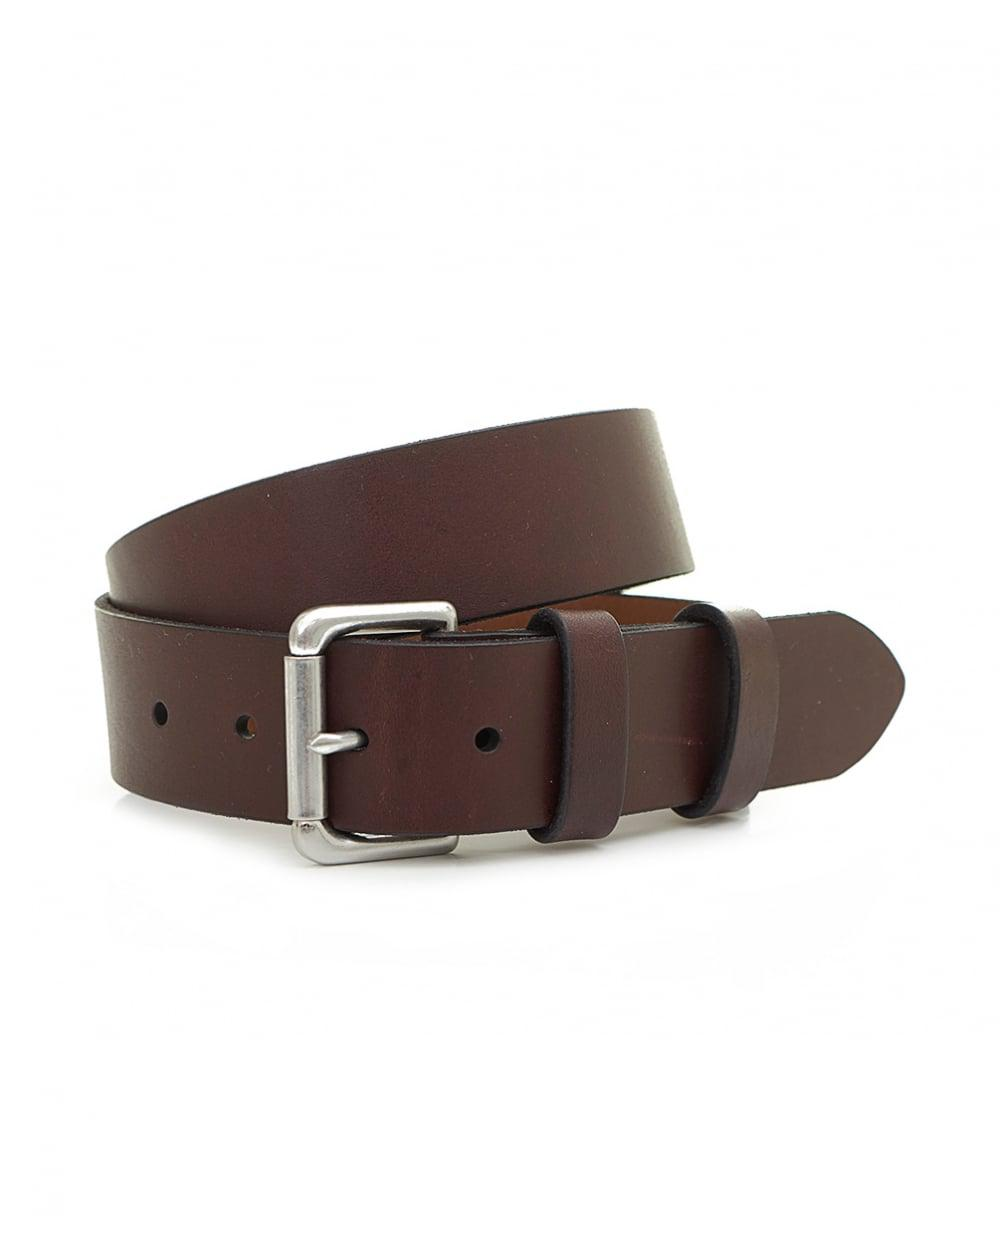 c44885a67da09 Polo Ralph Lauren Saddle Leather Jeans Belt in Brown for Men - Lyst